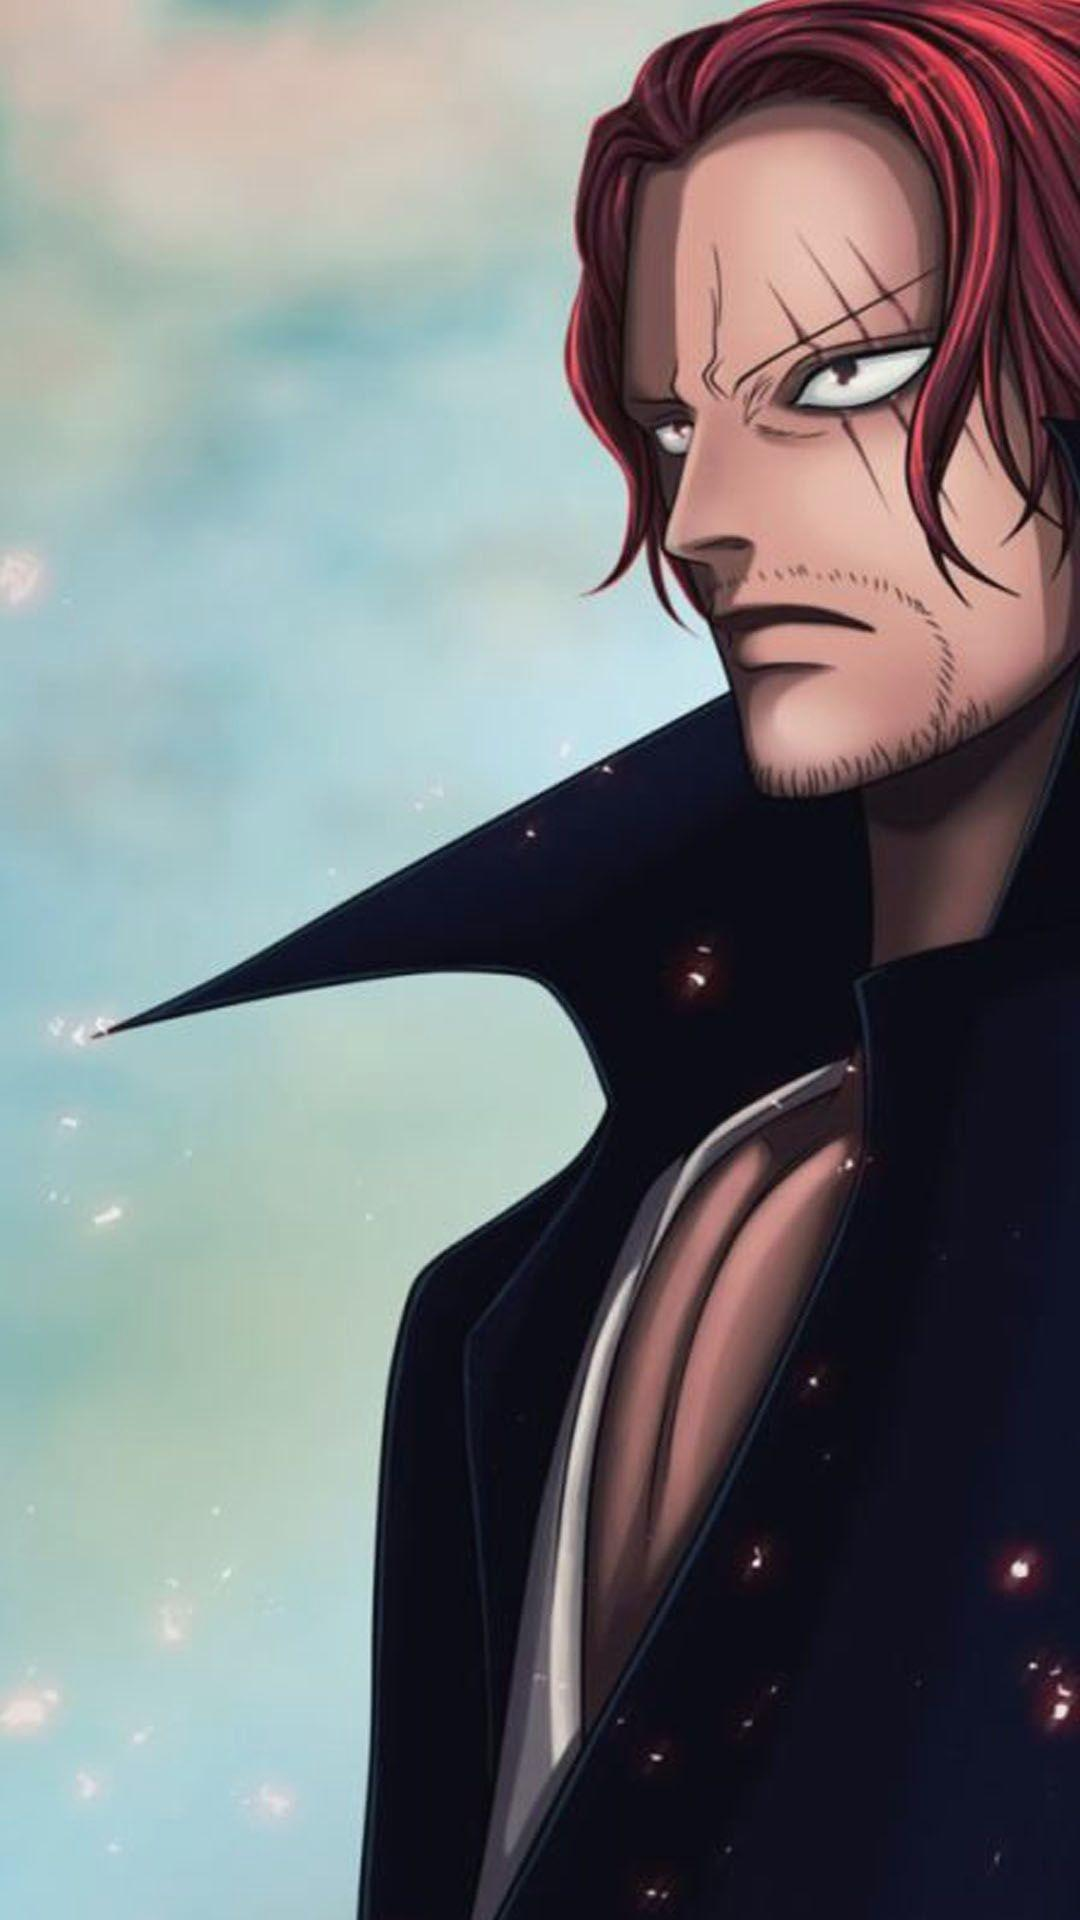 One Piece Yonkou Android Wallpapers - Wallpaper Cave